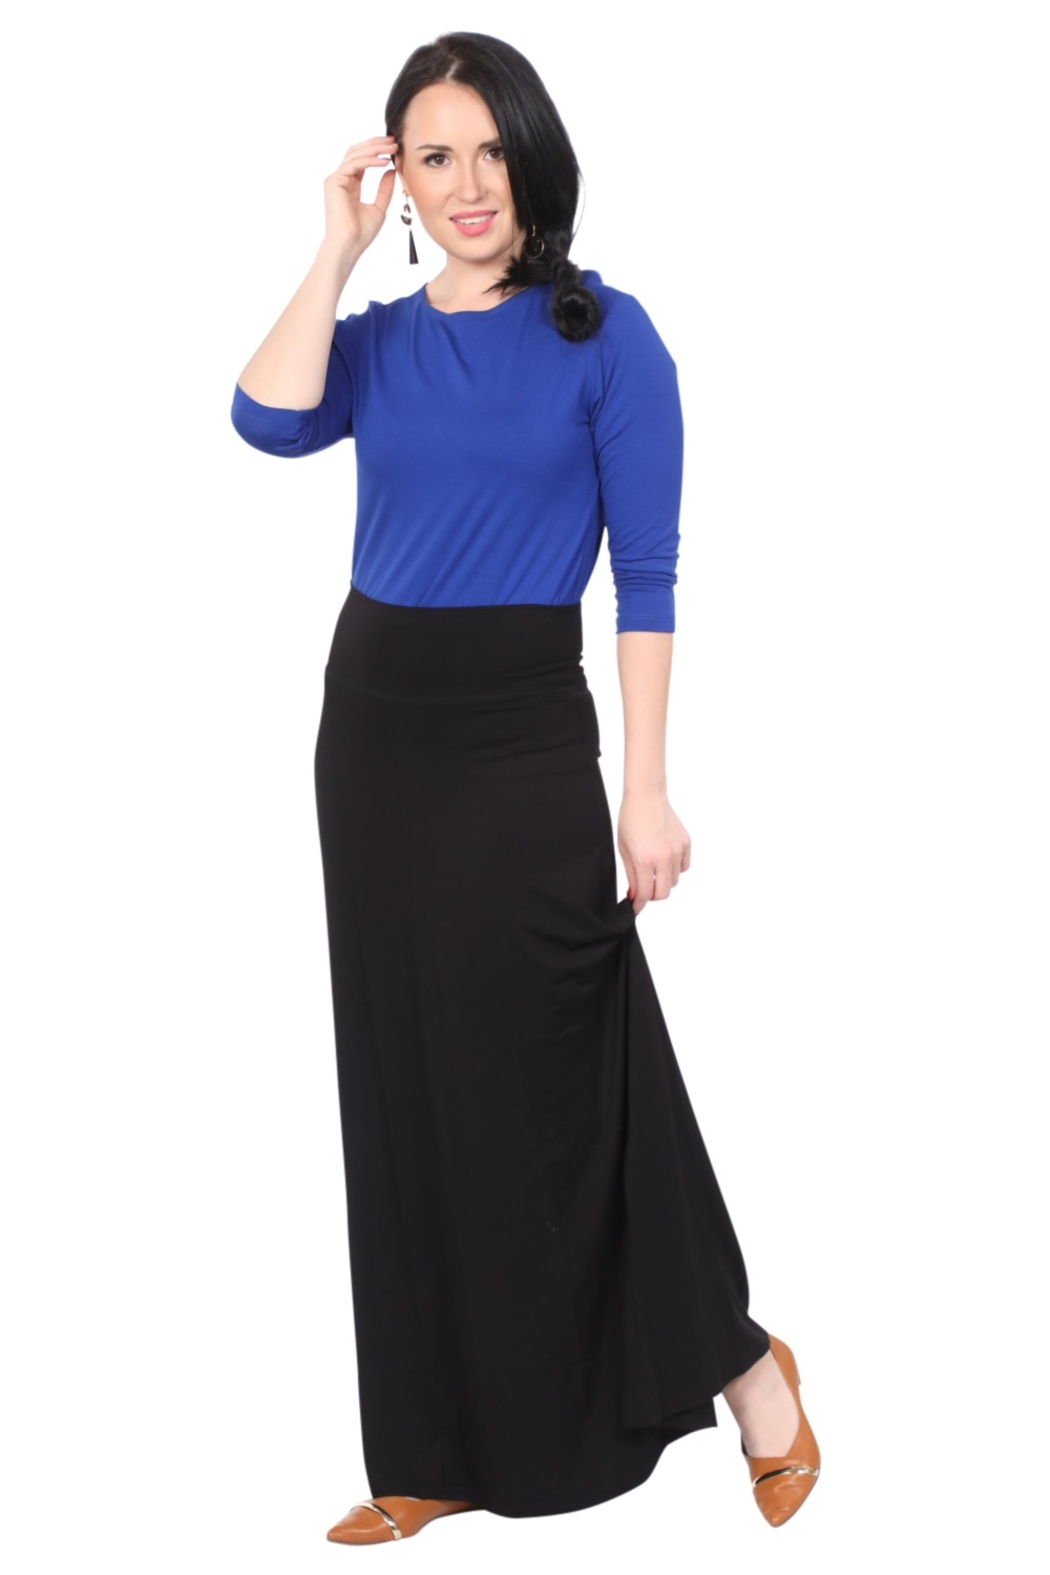 Kosher Casual Maxi Skirt for Women Flowing A-line - Main Image